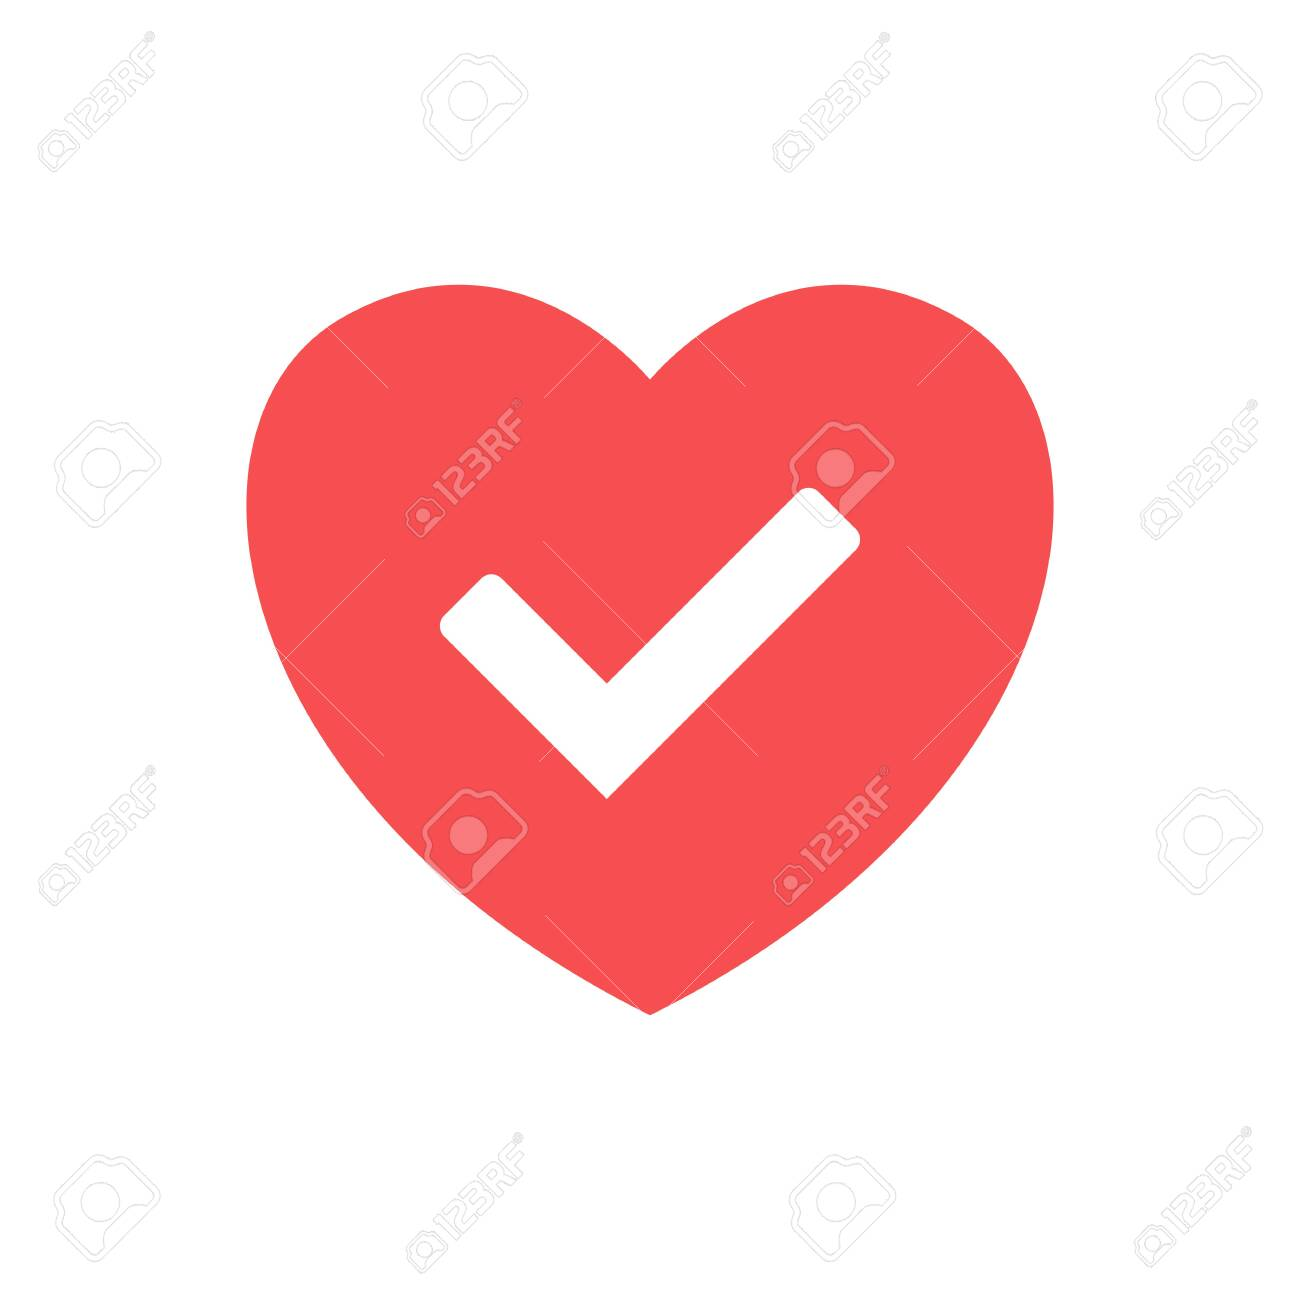 Red Heart Check Vector Icon Of Heart Vector On White Background Royalty Free Cliparts Vectors And Stock Illustration Image 122597324